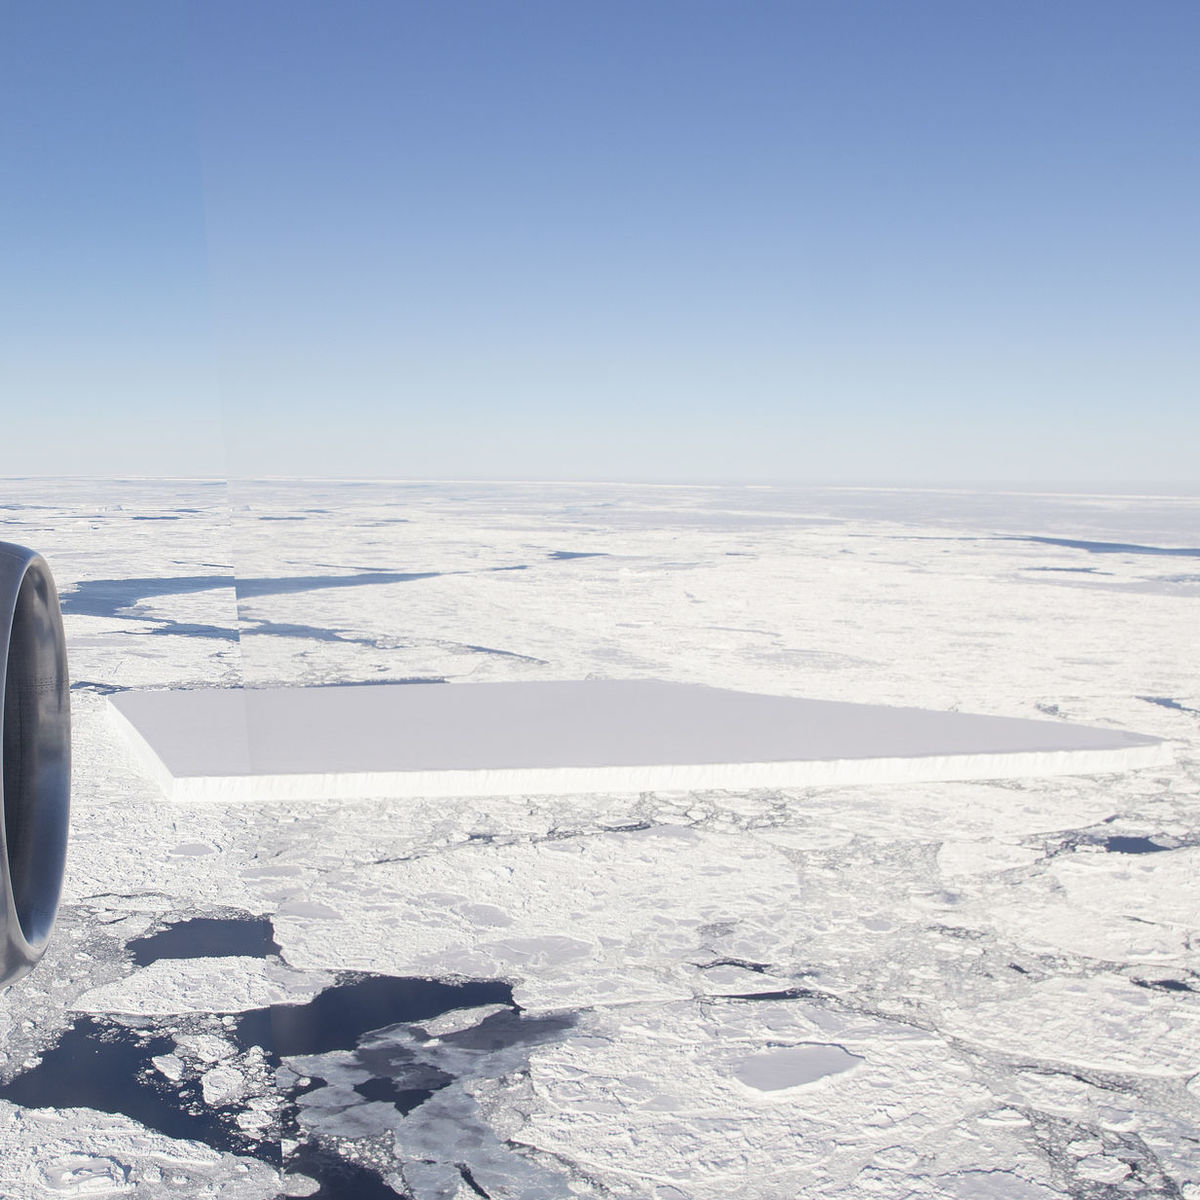 A composite of two photos shows the full extent of the trapezoidal shape of the large iceberg. Credit: NASA / Jeremy Harbeck